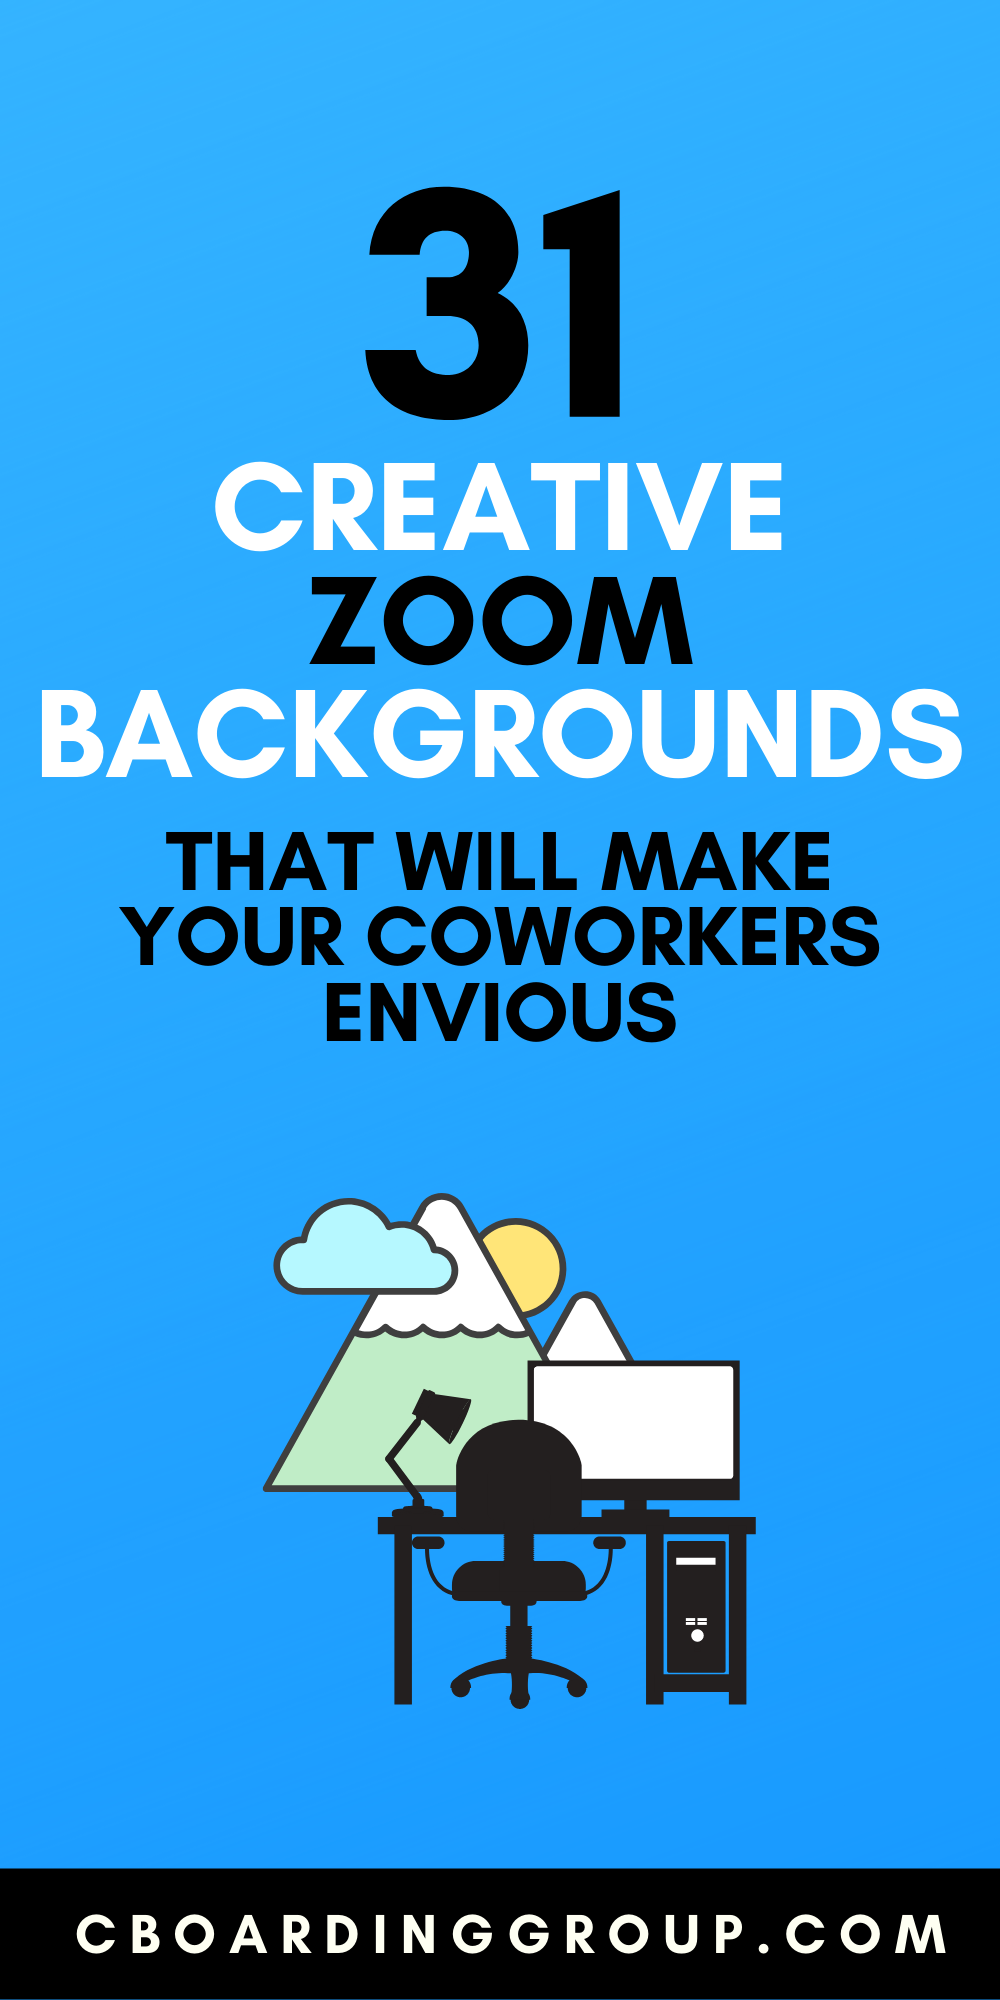 5 Funny Zoom Backgrounds your coworkers will be drooling over